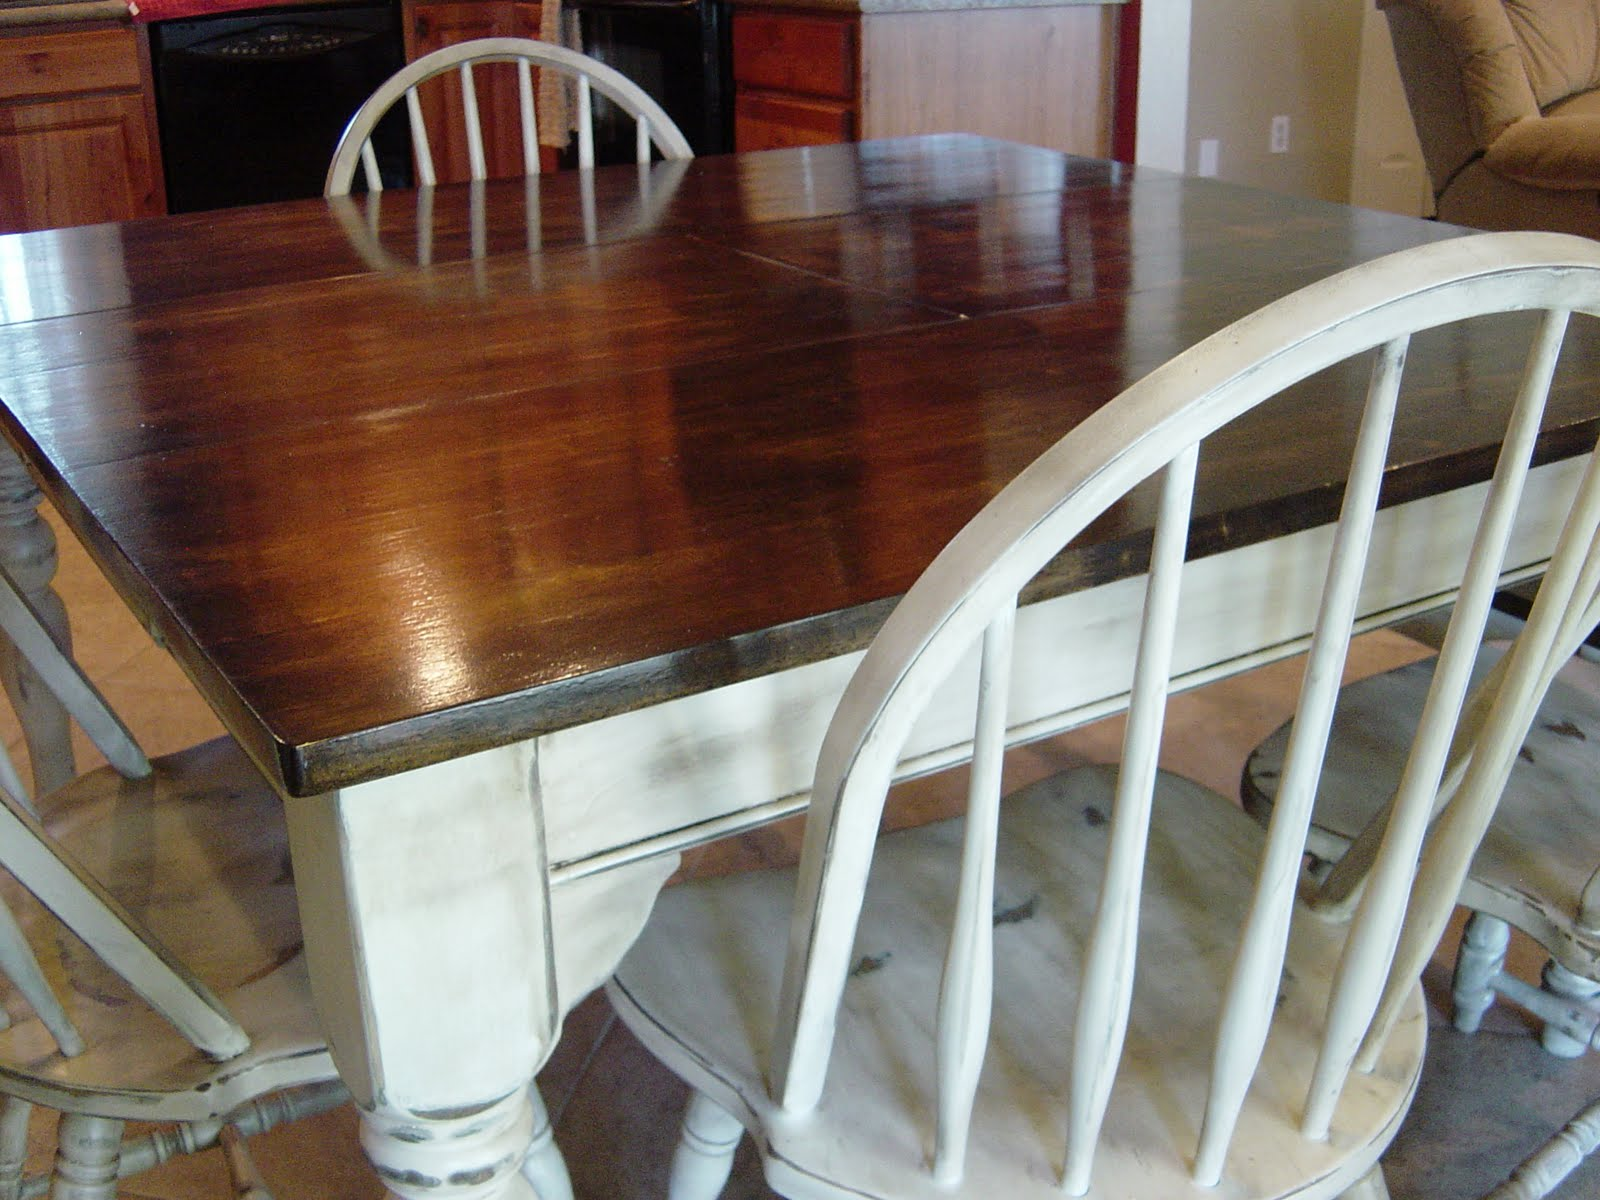 Kitchen Table Refinished With Distressed Look. Remodelaholic   Kitchen Table Refinished With Distressed Look